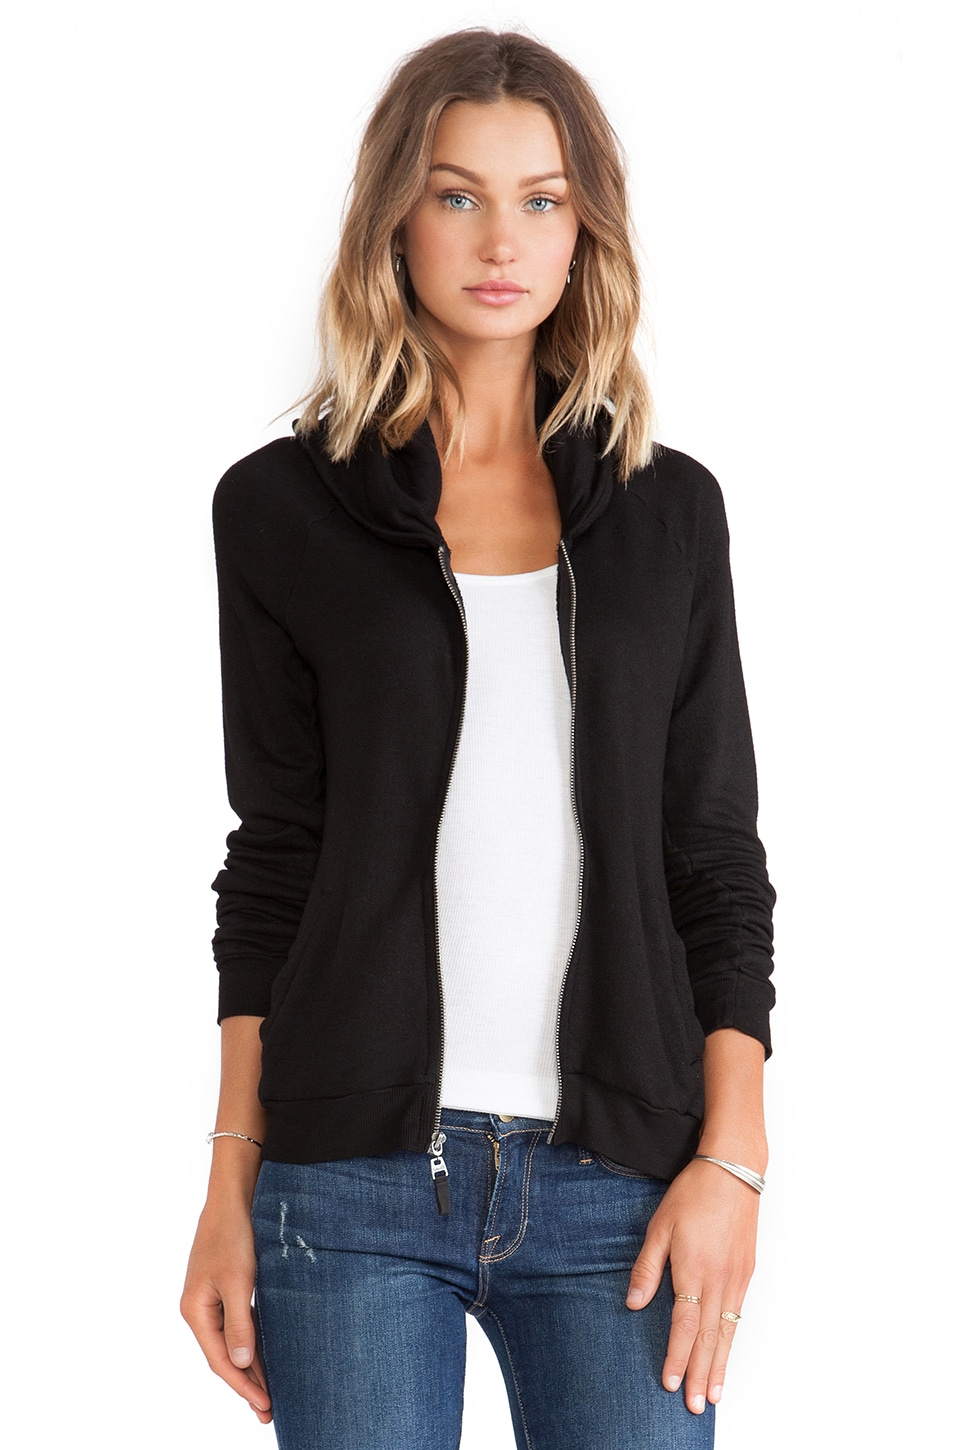 Splendid Zip Hoodie in Black